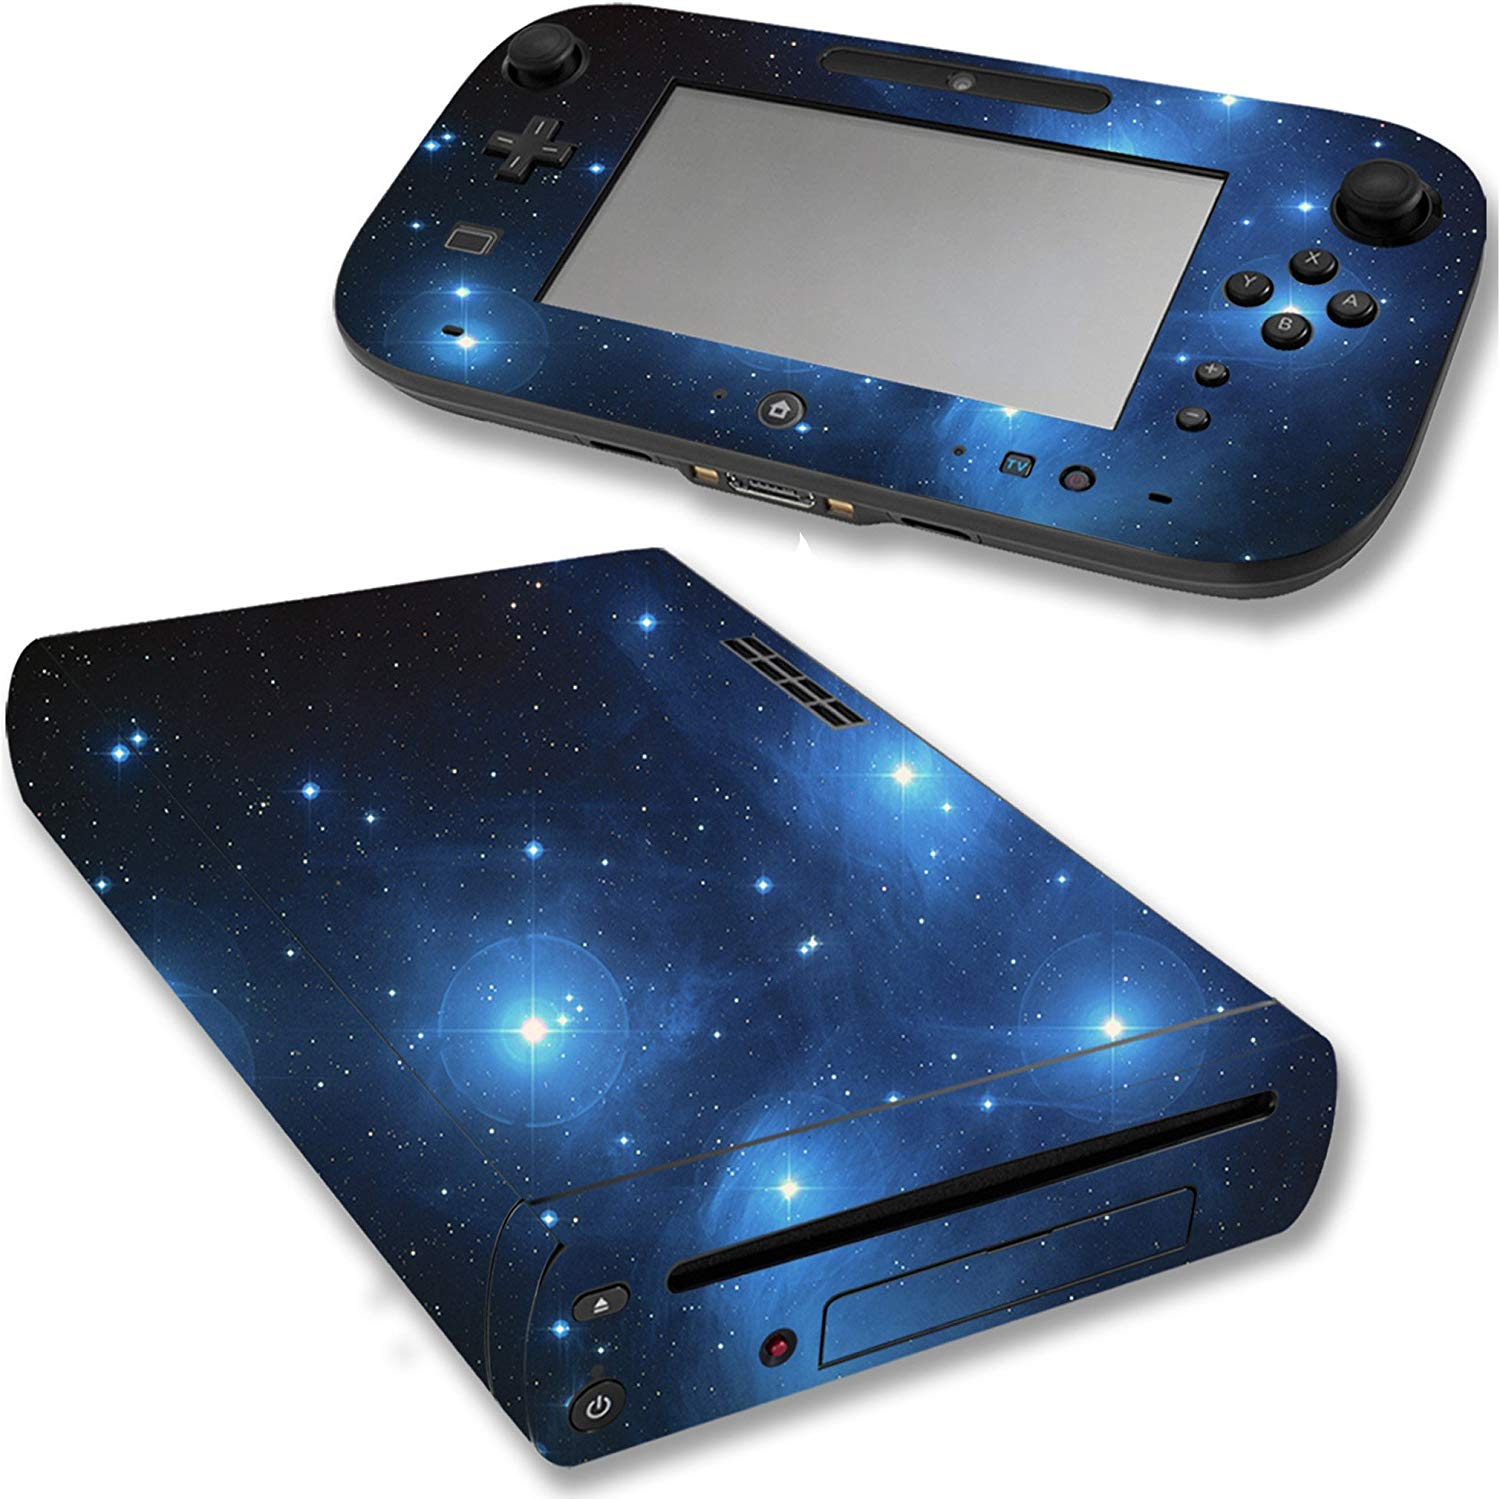 VWAQ Wii U Galaxy Skin Nintendo Wii U Sticker Space Skins Cover - WGC1 - VWAQ Vinyl Wall Art Quotes and Prints